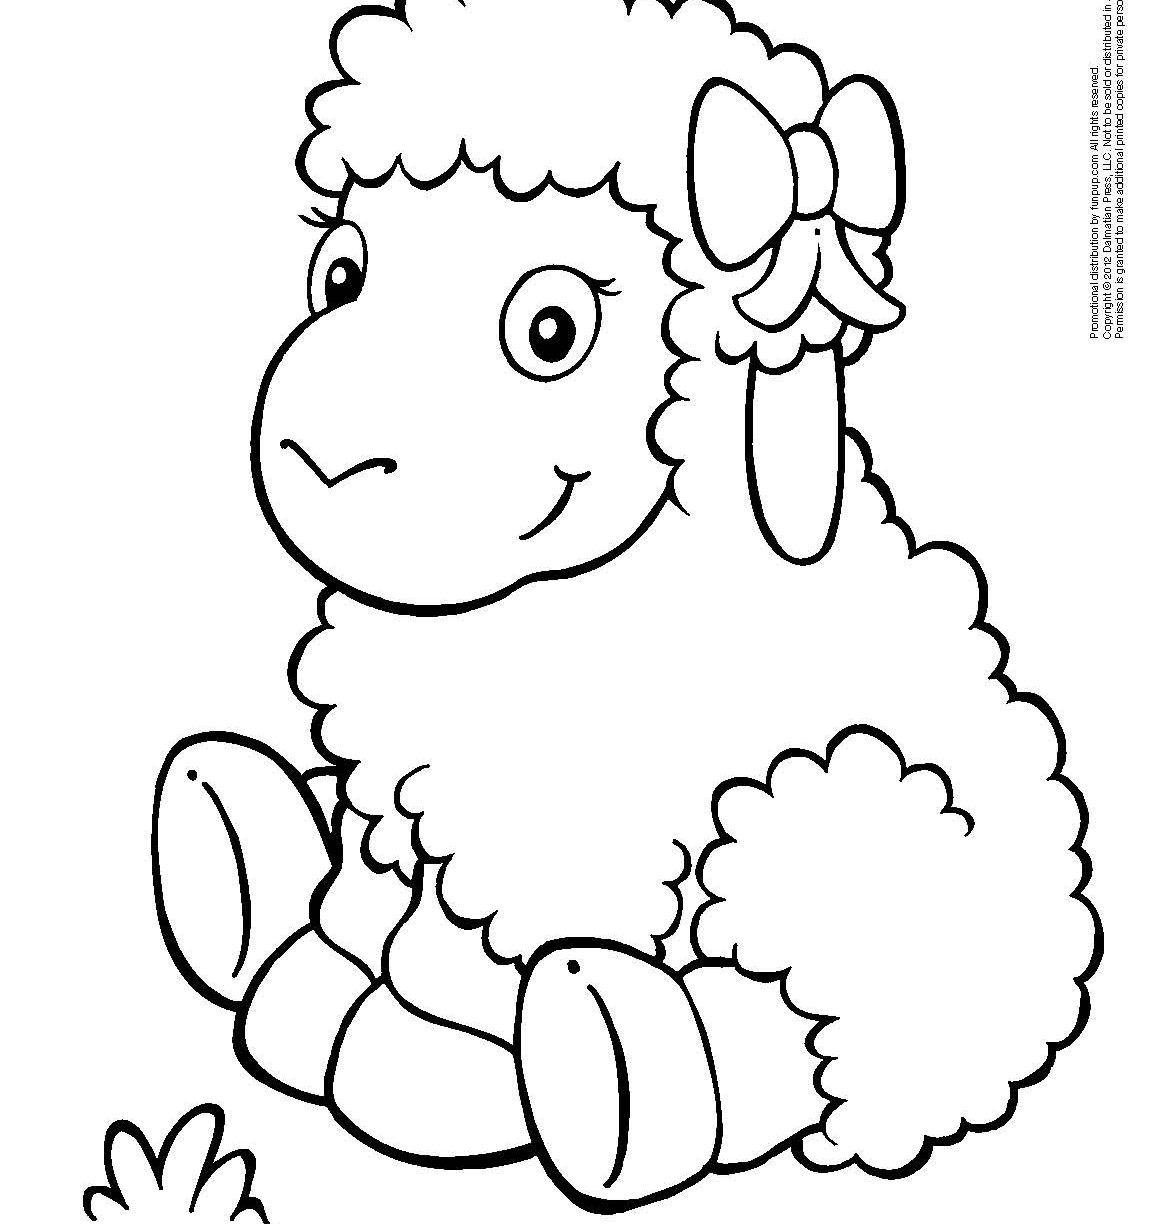 Lamb Outline Drawing at GetDrawings | Free download